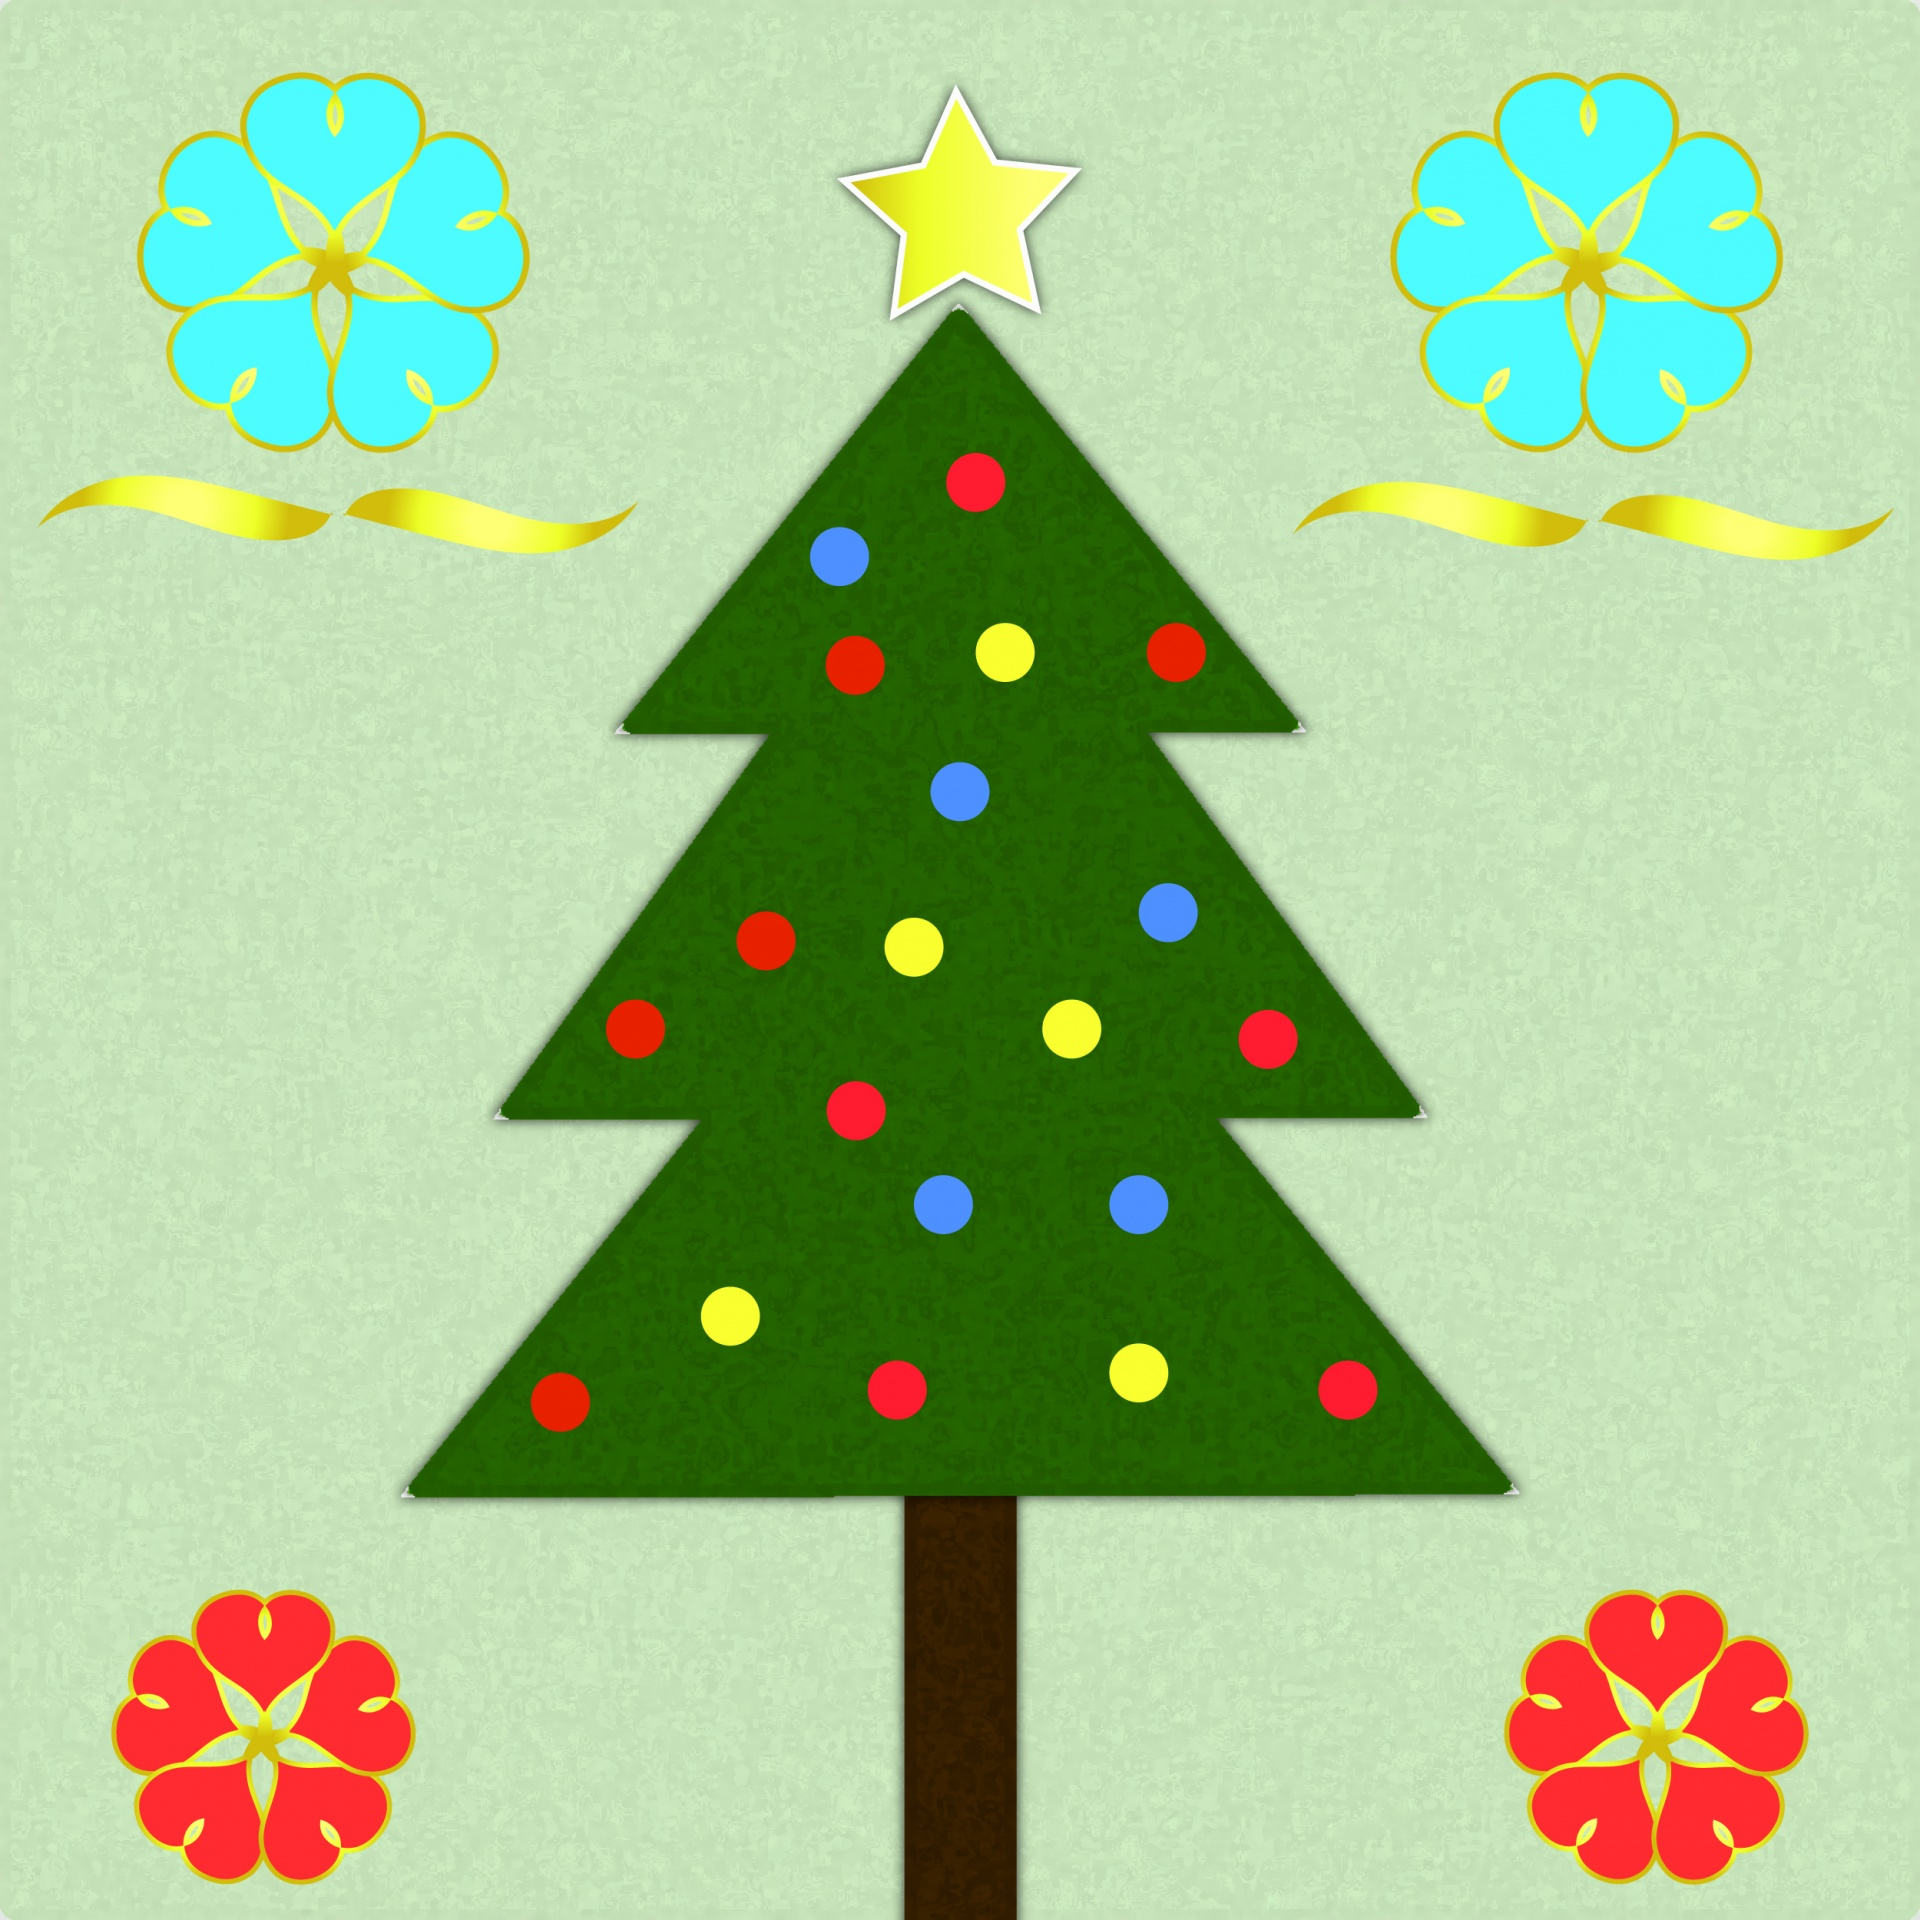 Christmas Trees Pattern Background Free Stock Photo - Public Domain Pictures